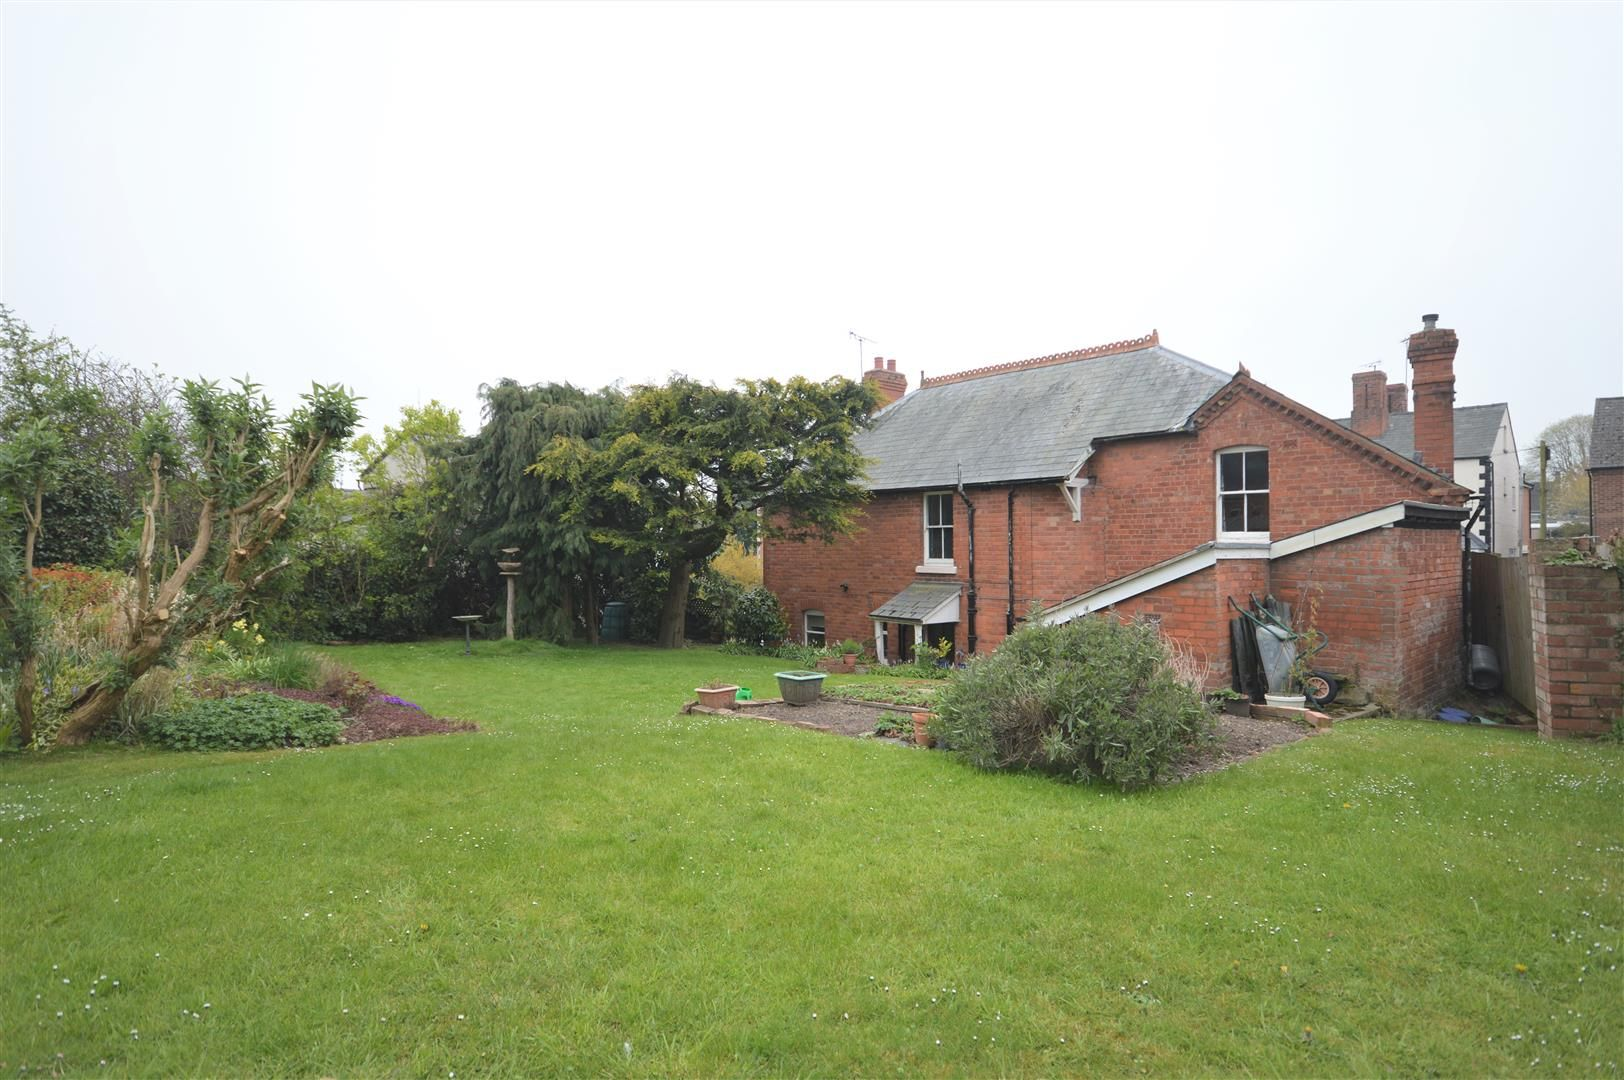 5 bed detached for sale in Leominster 12